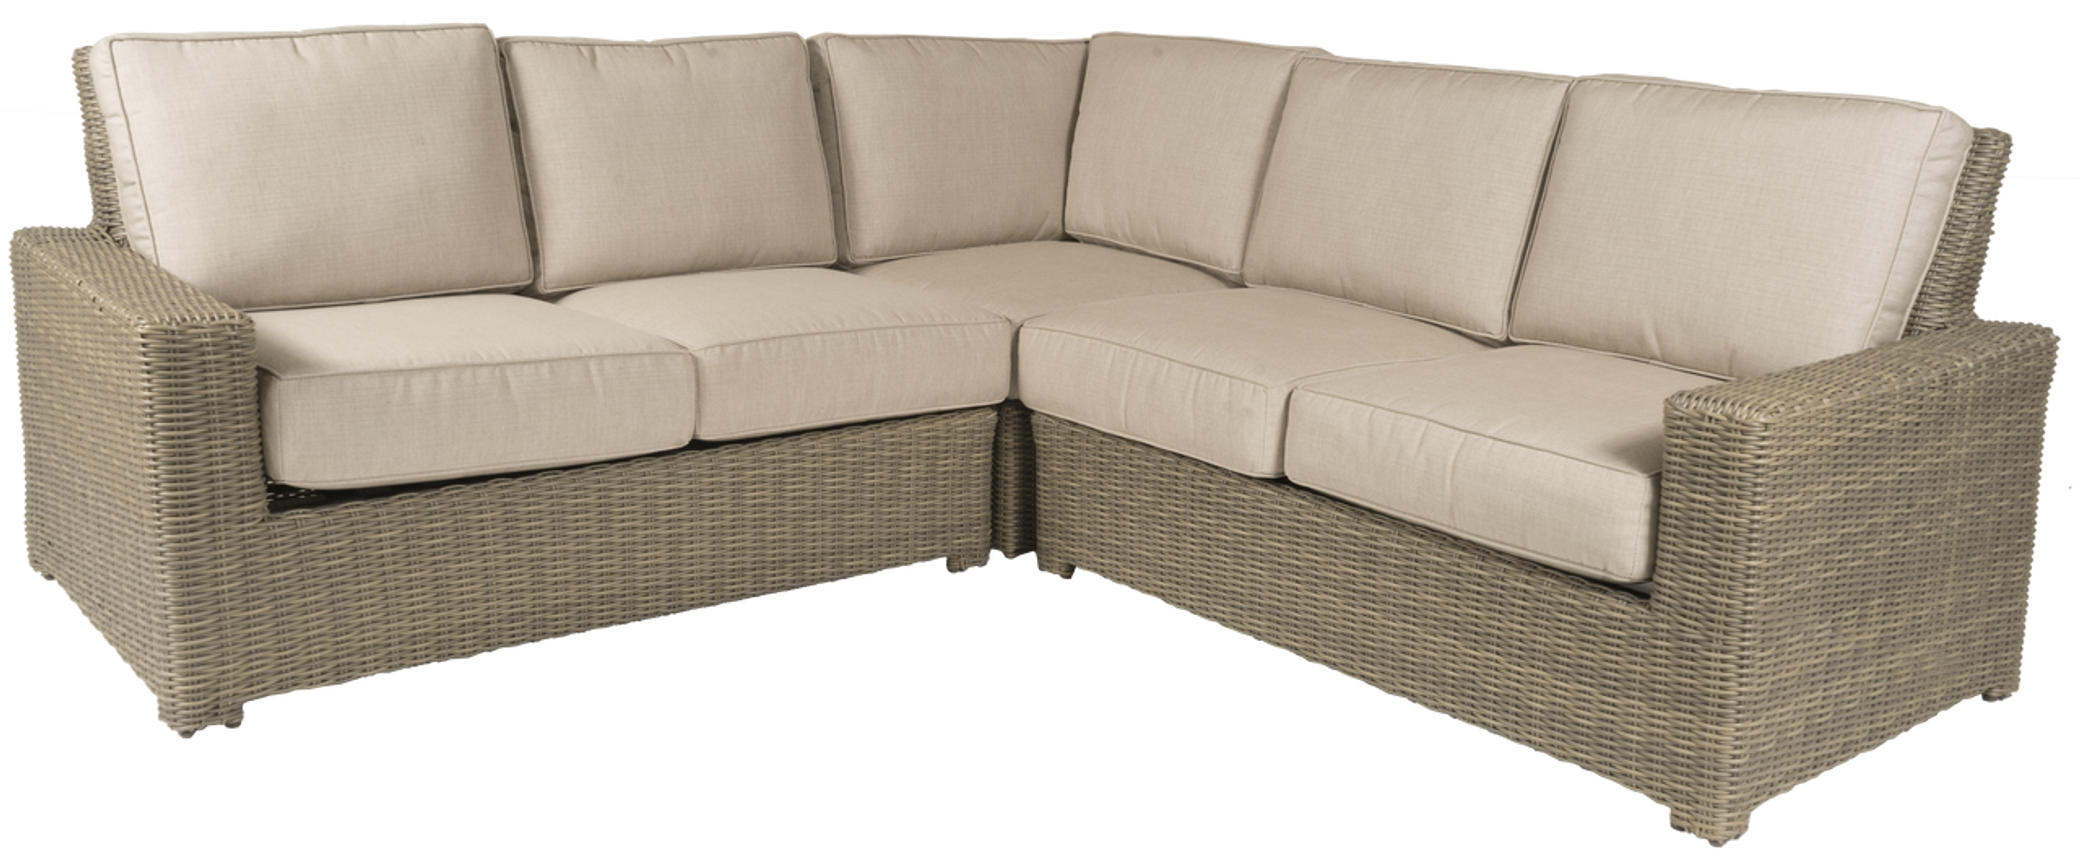 Erwin Napa Outdoor Sectional Sofa W/Cushions (Ships In 4 6 Weeks)